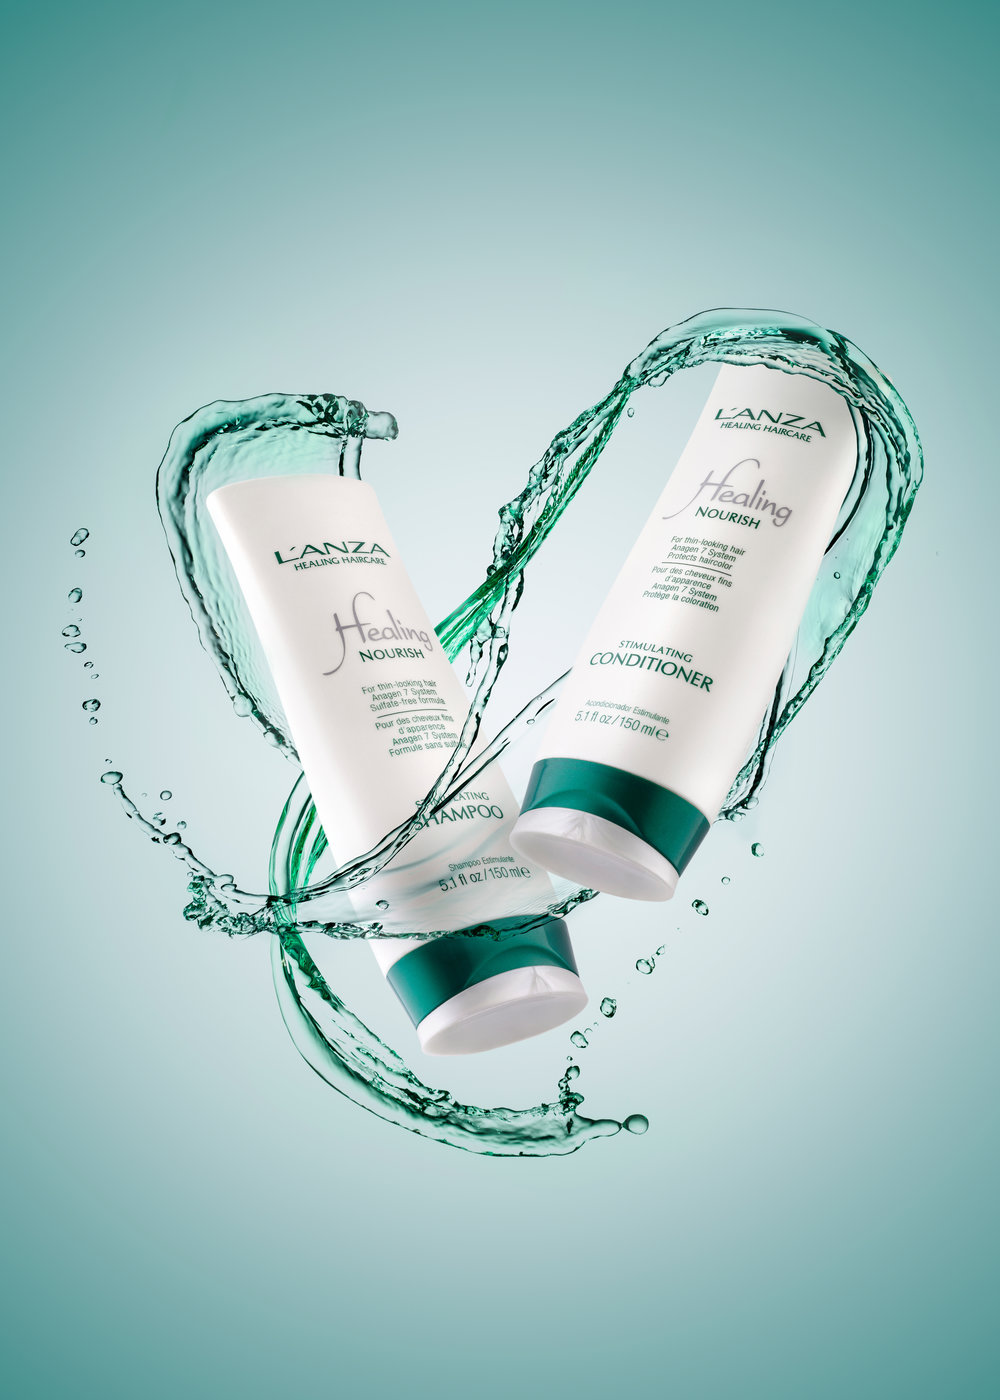 lanza haircare photo product photography